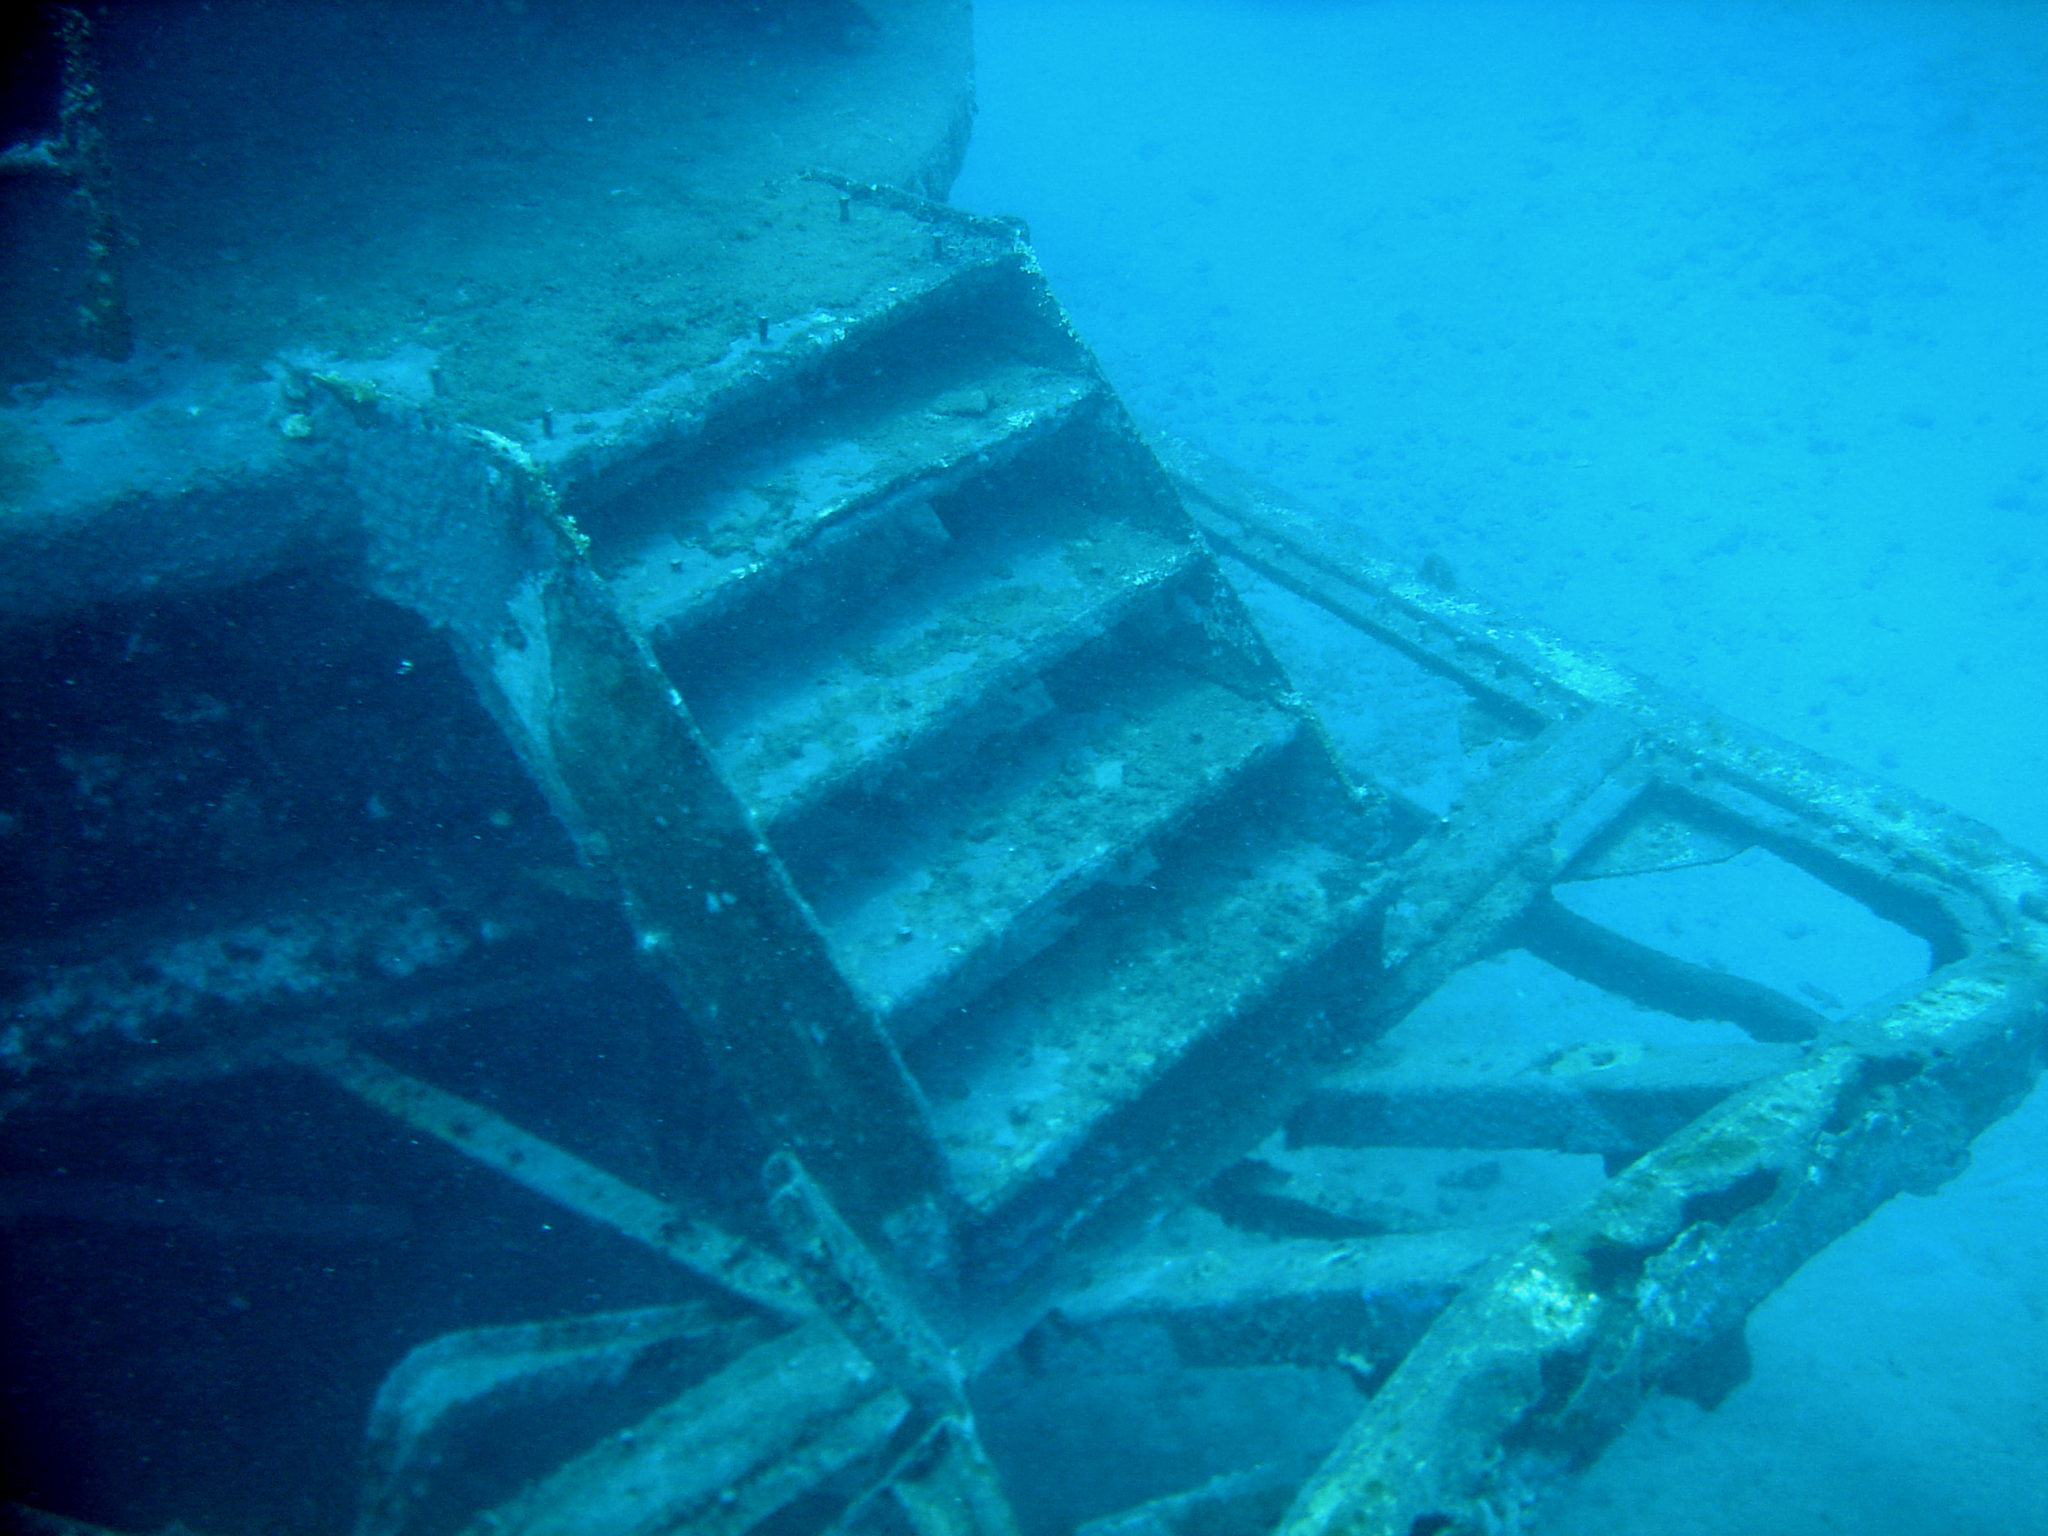 Republique_dominicaine_roadtrip_bayahibe_plongee_scubafun_atlantic_princess_escalier_epave